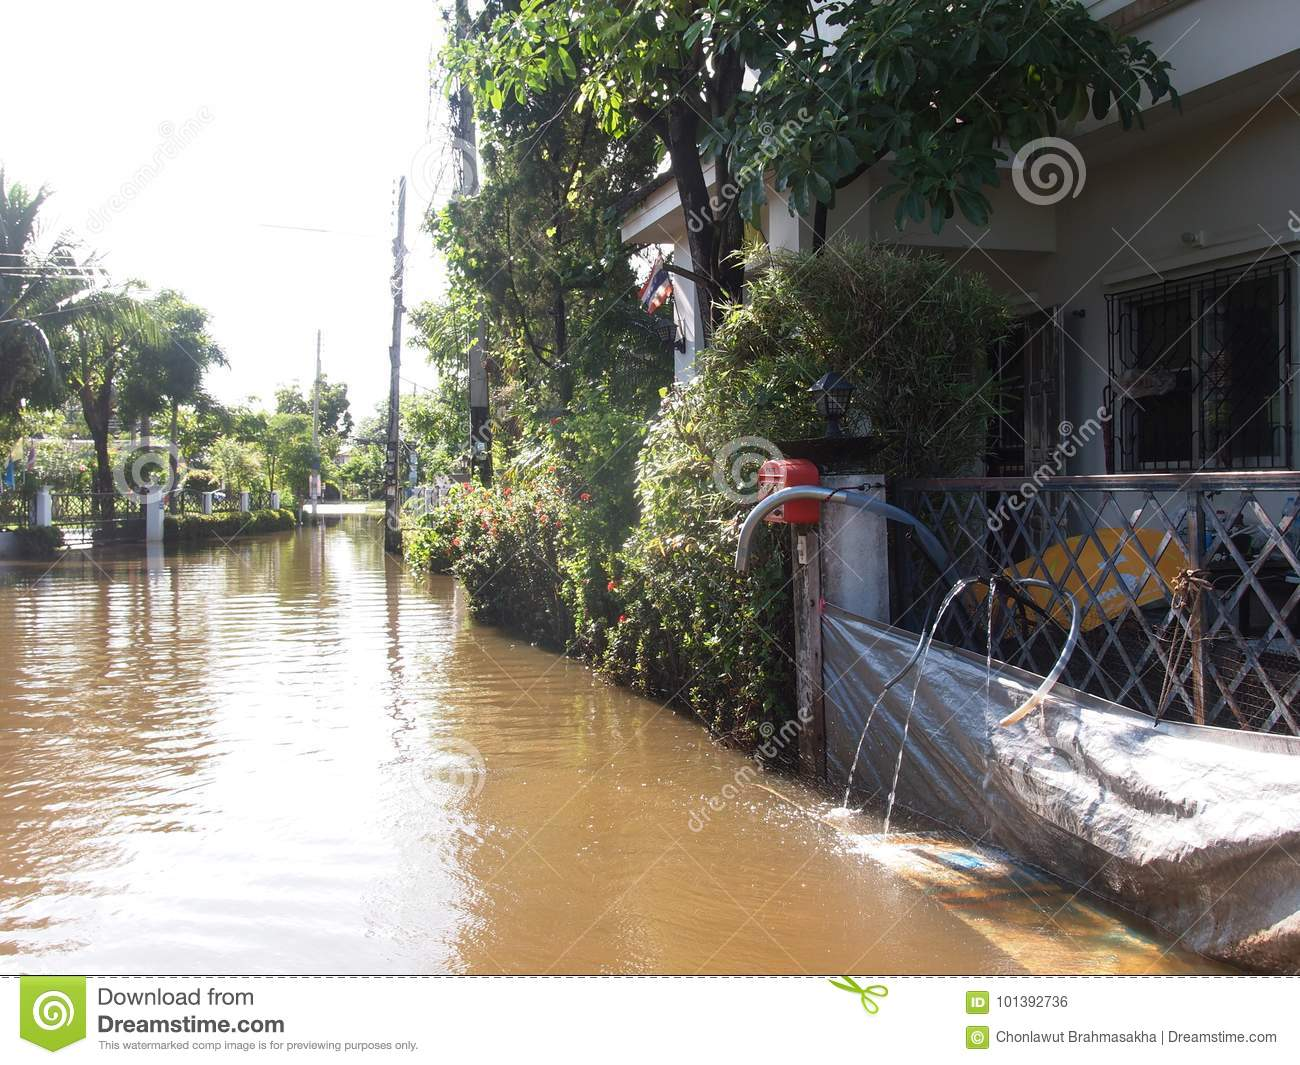 Global warming effect in town, low level flood water in urban zone